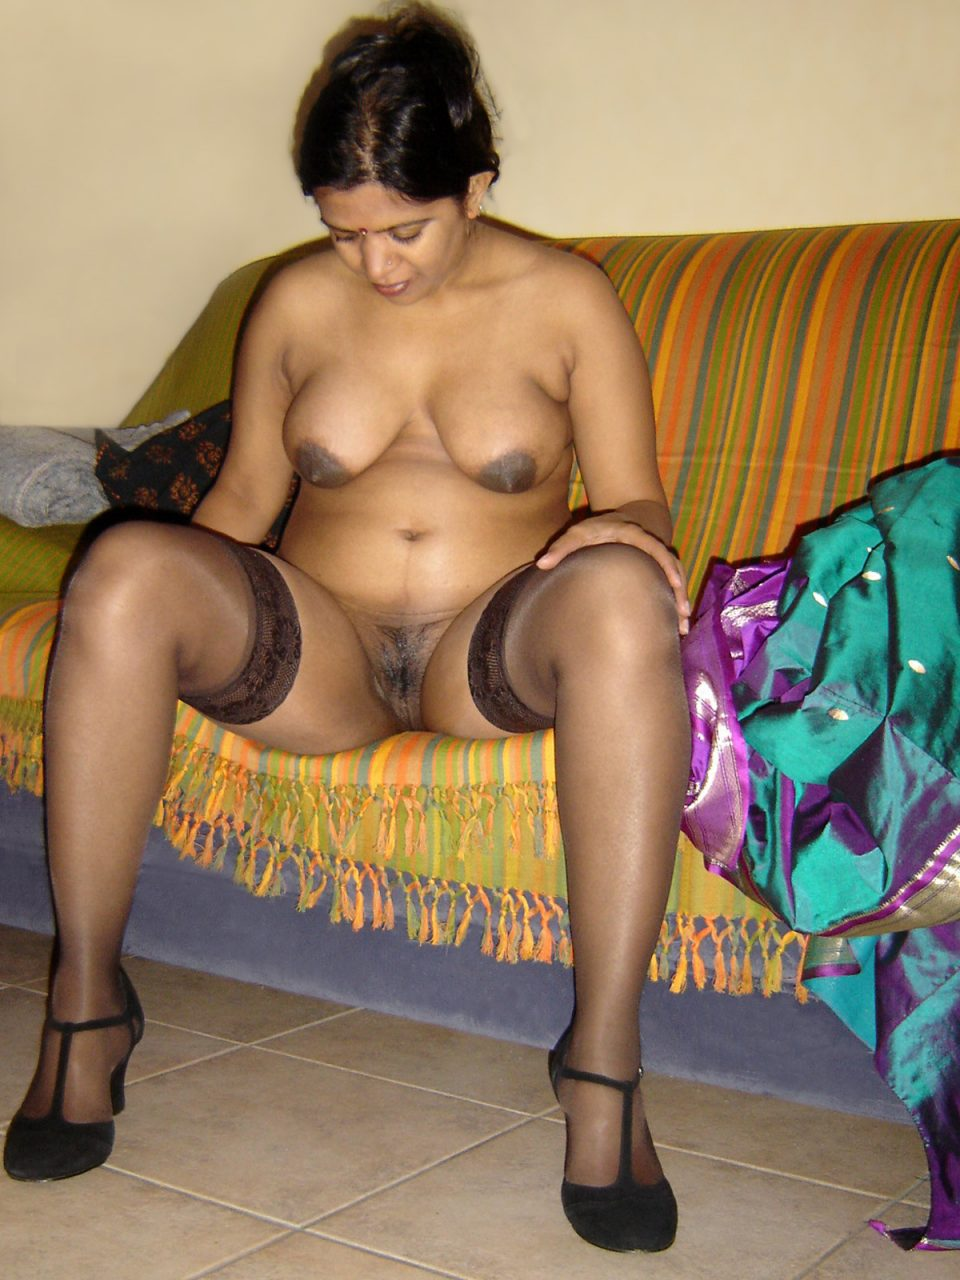 Agree with Hot punjabi porn pics in saree remarkable, very